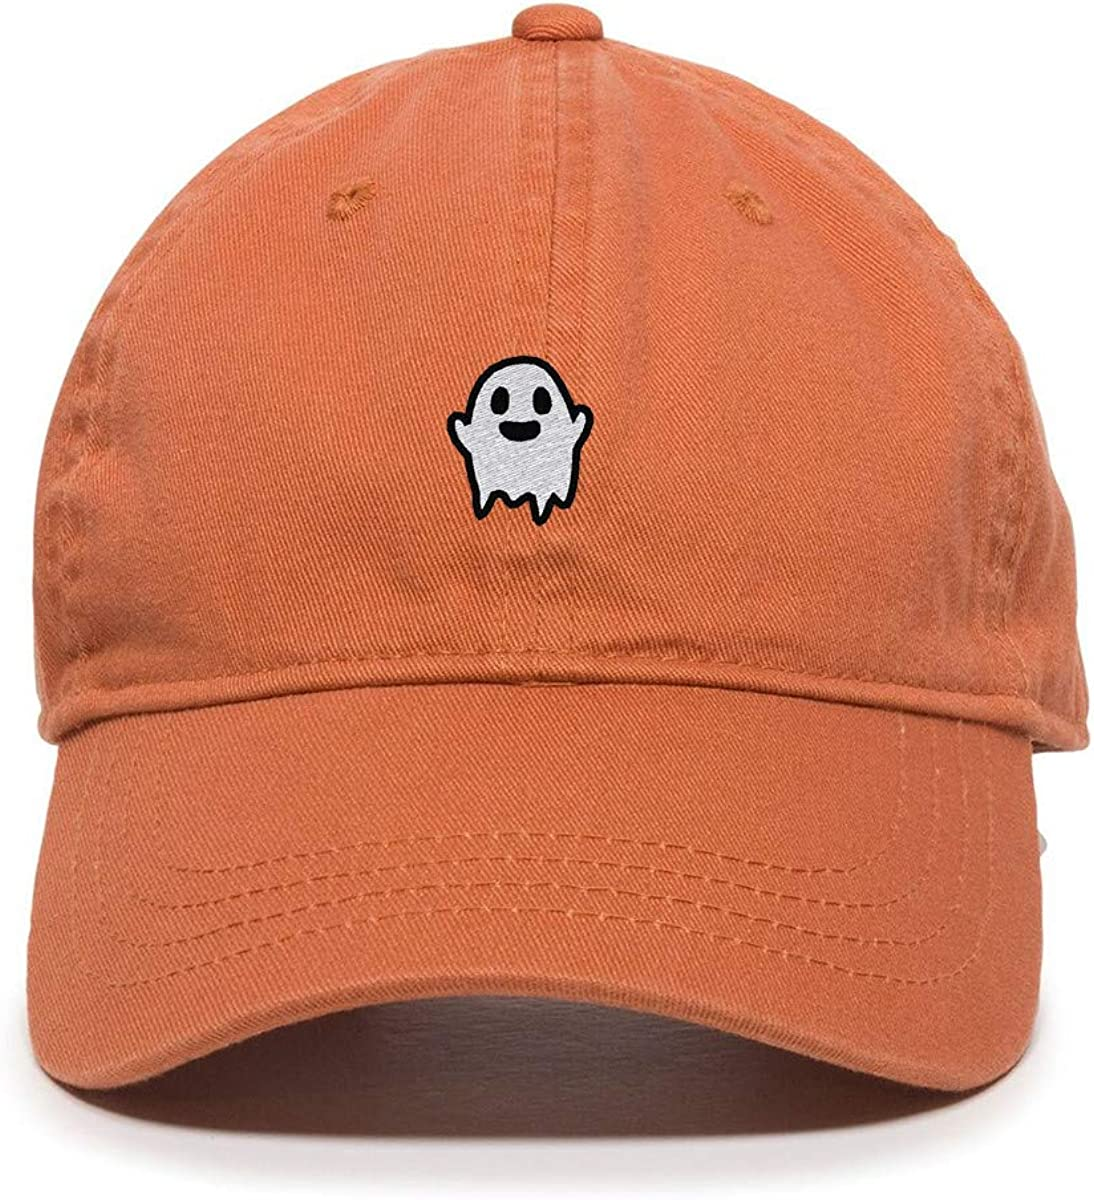 DSGN By Clearance SALE! Limited time! DNA Popularity Ghost Baseball Dad Embroidered Cotton Adjustable Cap